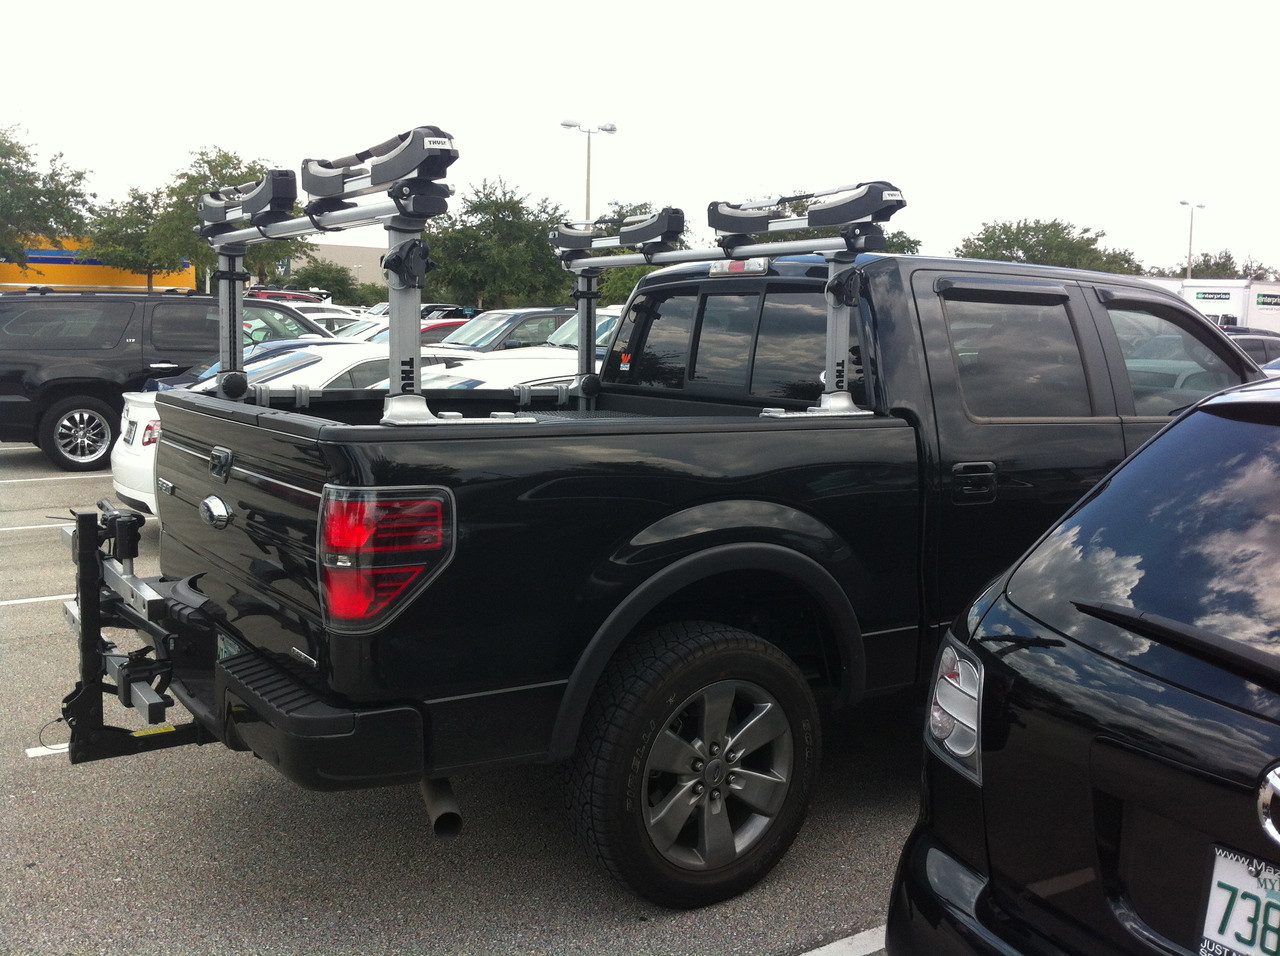 Surf Rack For Car >> Surf, SUP, and Kayak Rack | Thule Xsporter Pro ...